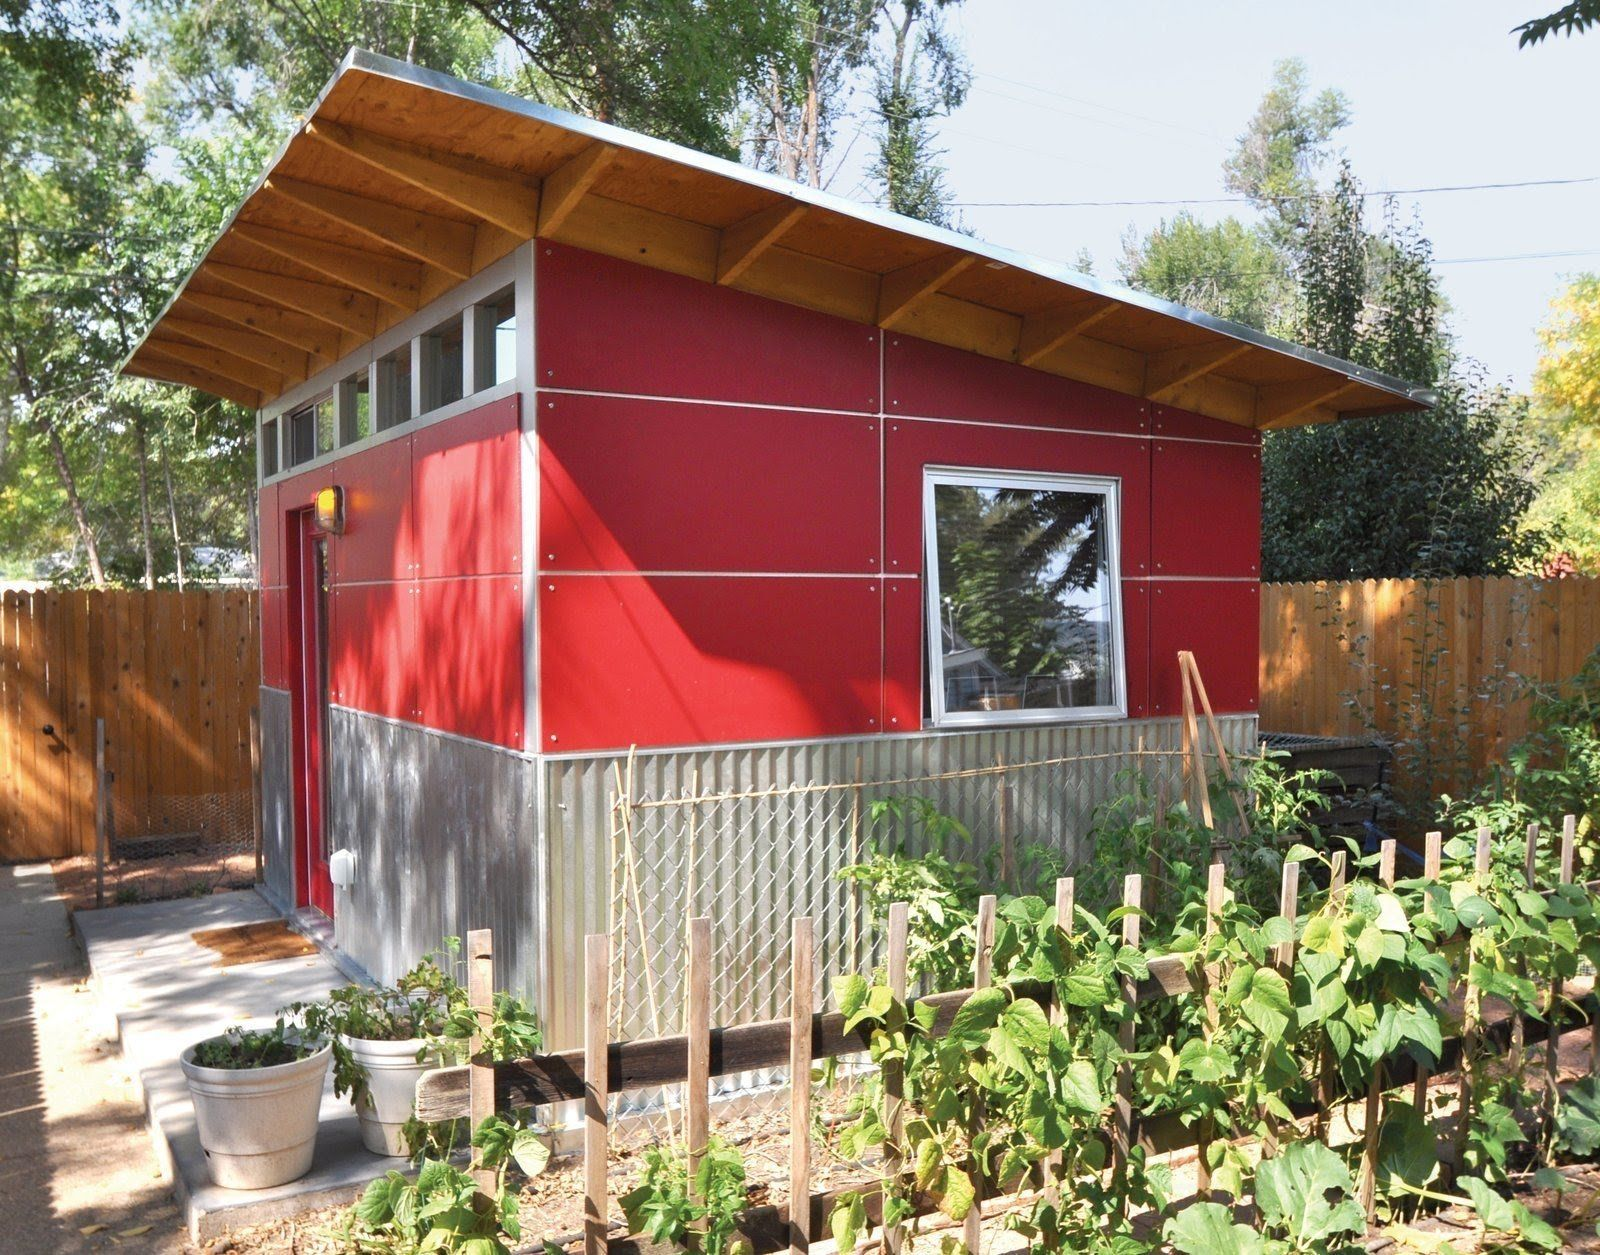 office garden shed. Dwell - 8 Tiny Sheds And Studios Used As Home Offices Or Creative Retreats Office Garden Shed